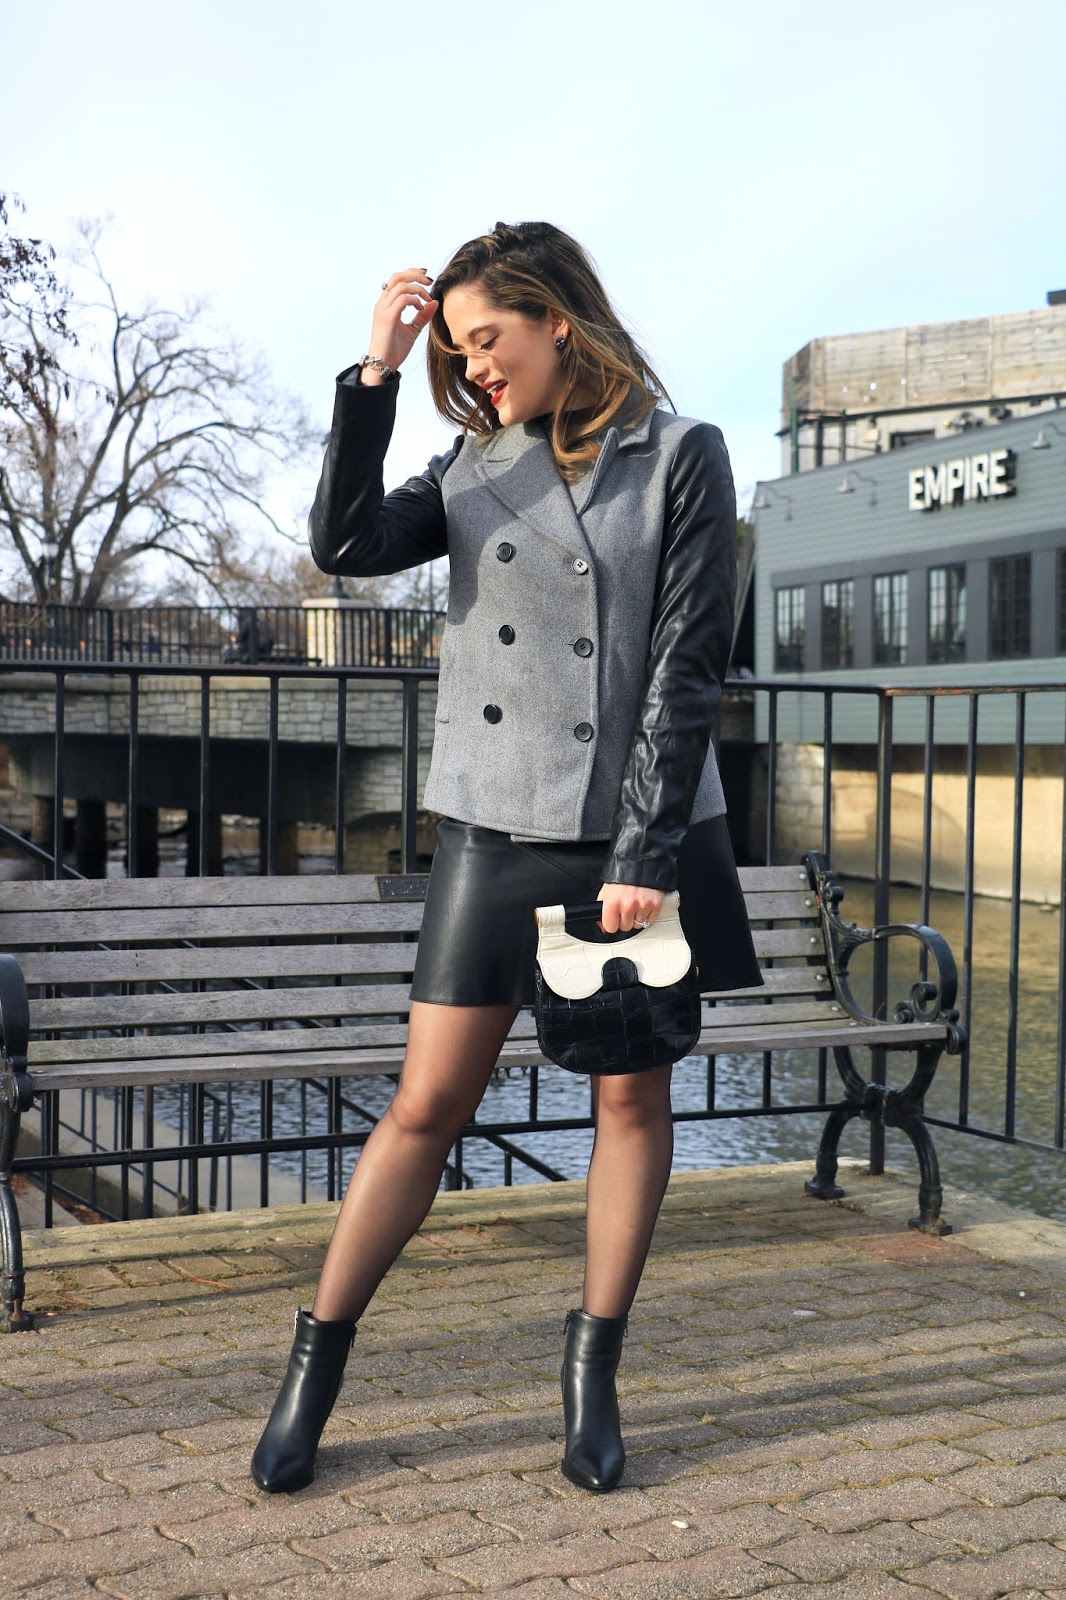 Nyc fashion blogger Kathleen Harper's leather mini skirt outfit.